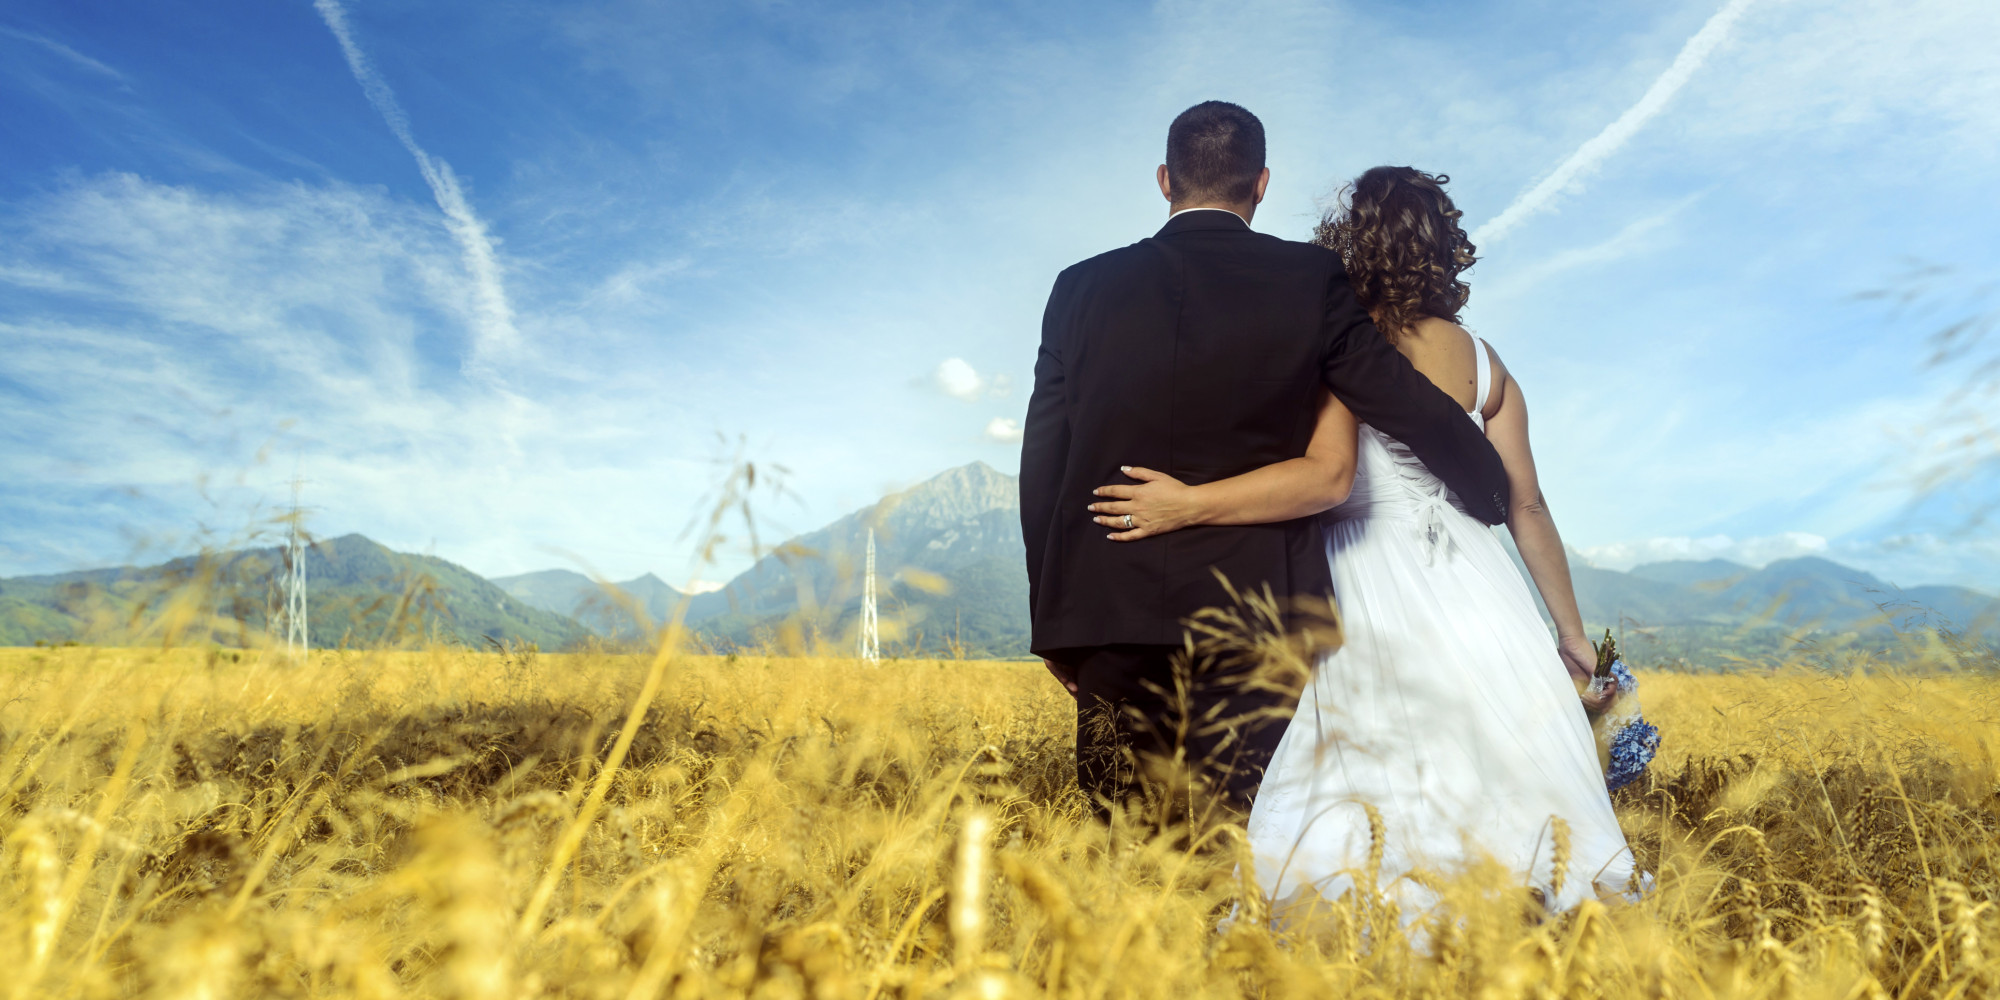 Three Pieces Of Marriage Advice You Should Actually Listen To